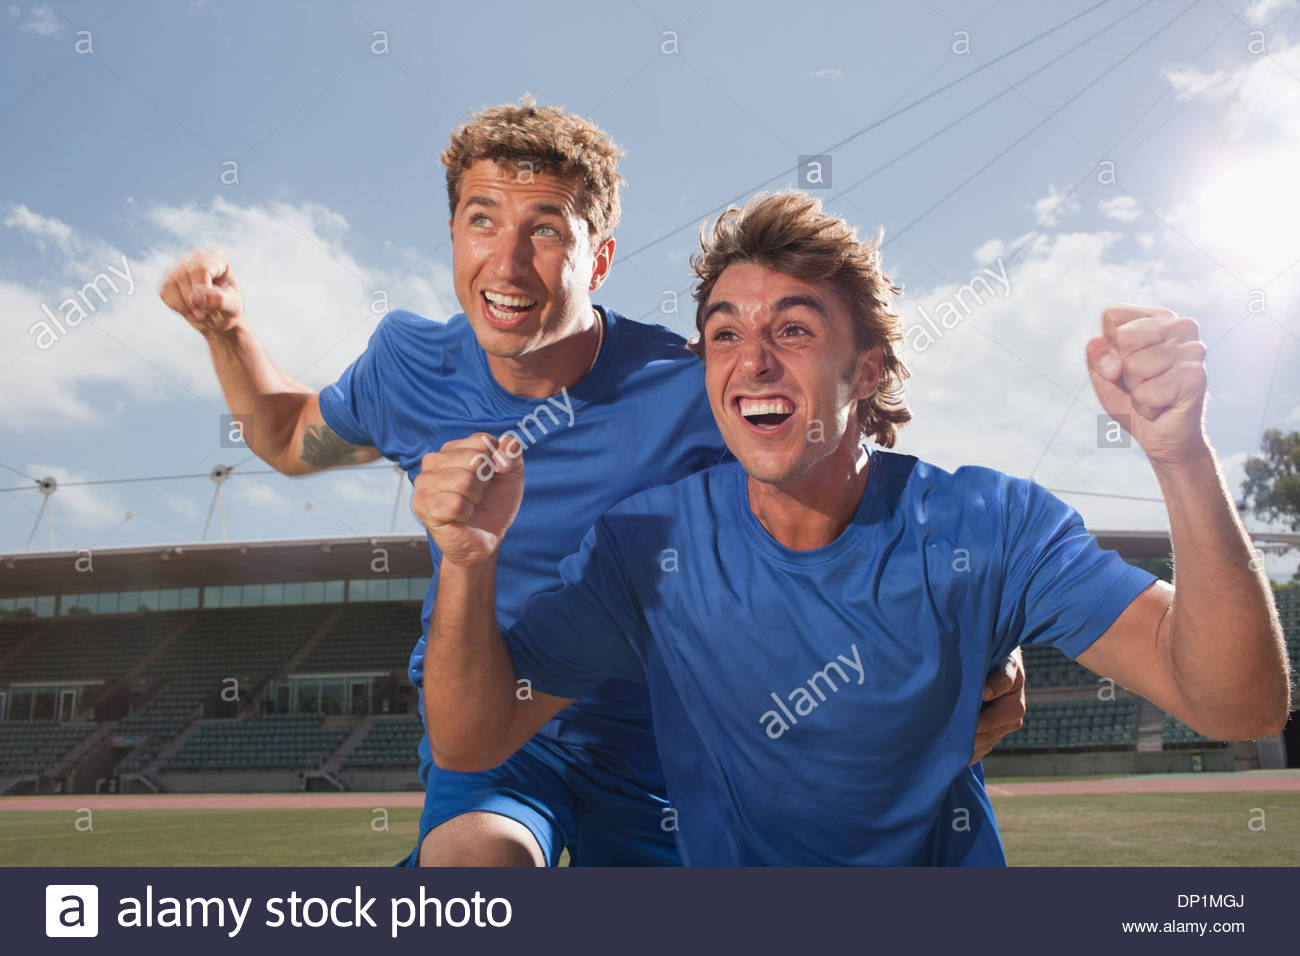 Soccer players cheering - Stock Image